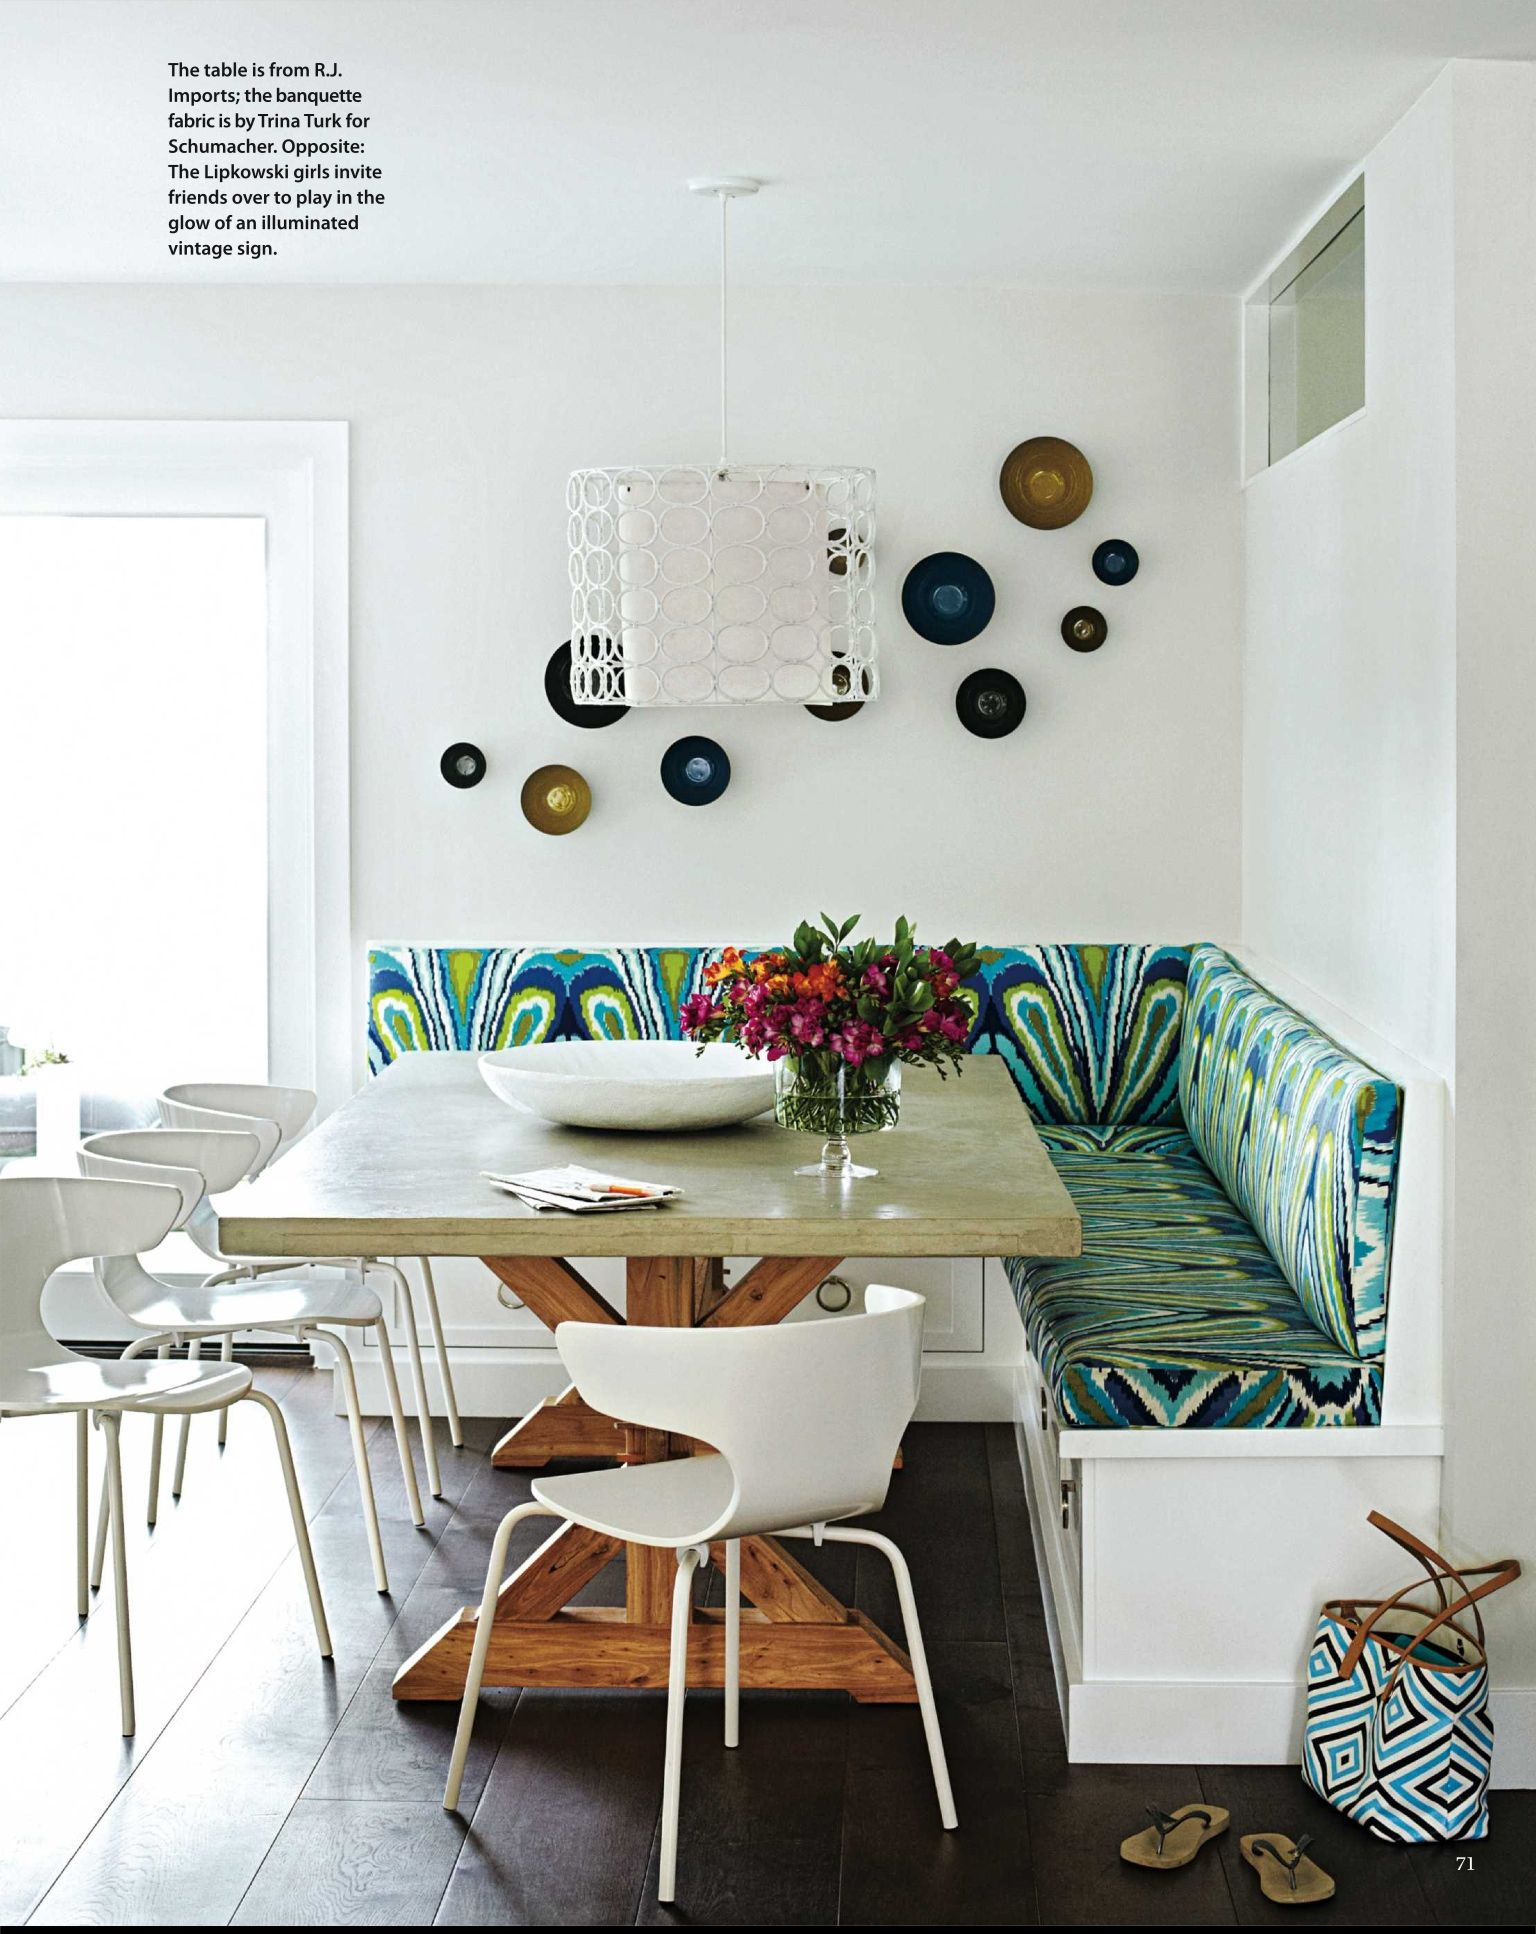 Banquette Pour Balcon Pin By Jacqueline On Dining Rooms Pinterest Salle à Manger